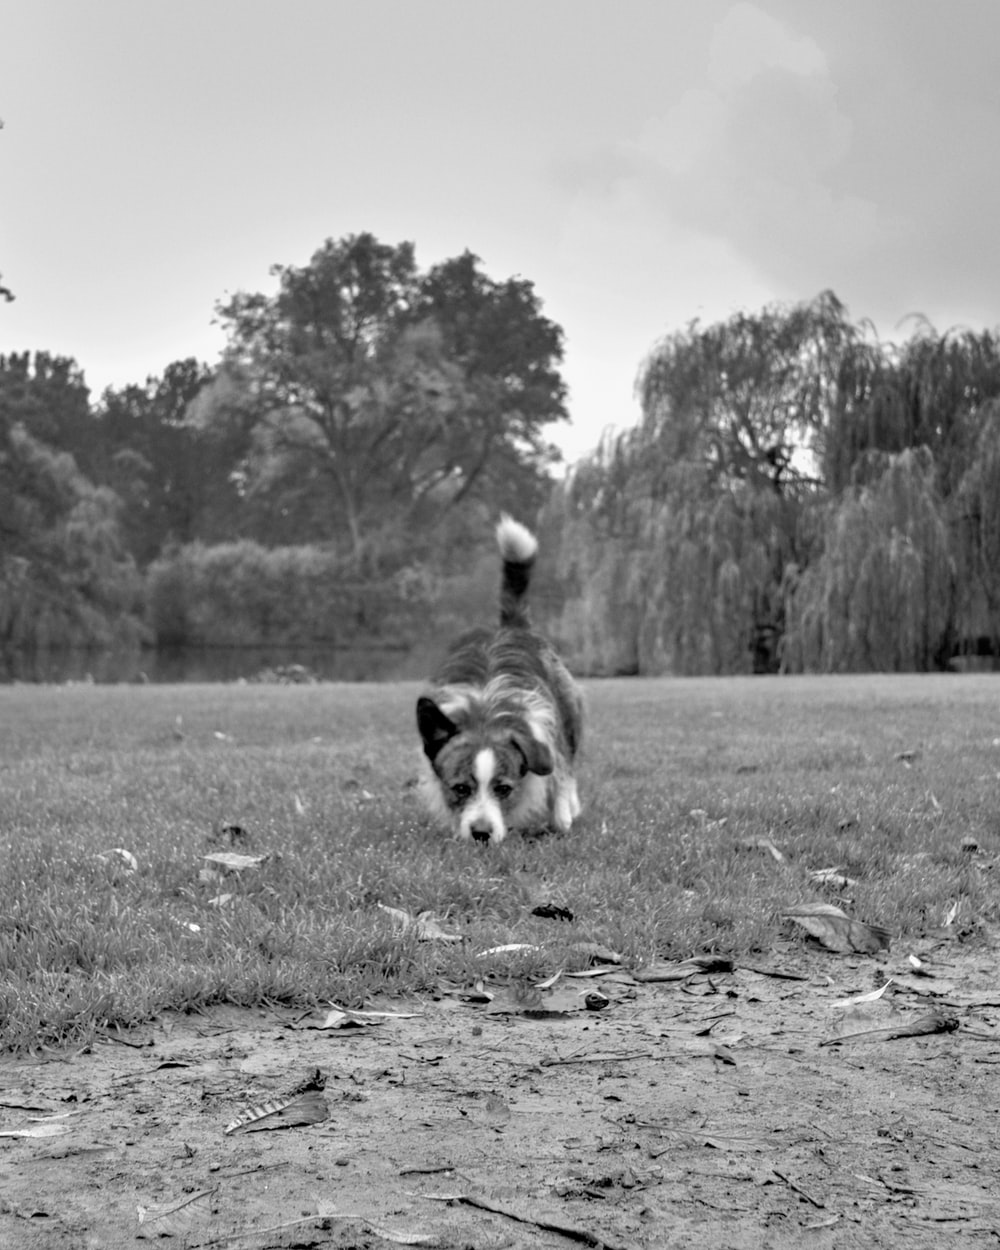 grayscale photo of long coated dog running on grass field